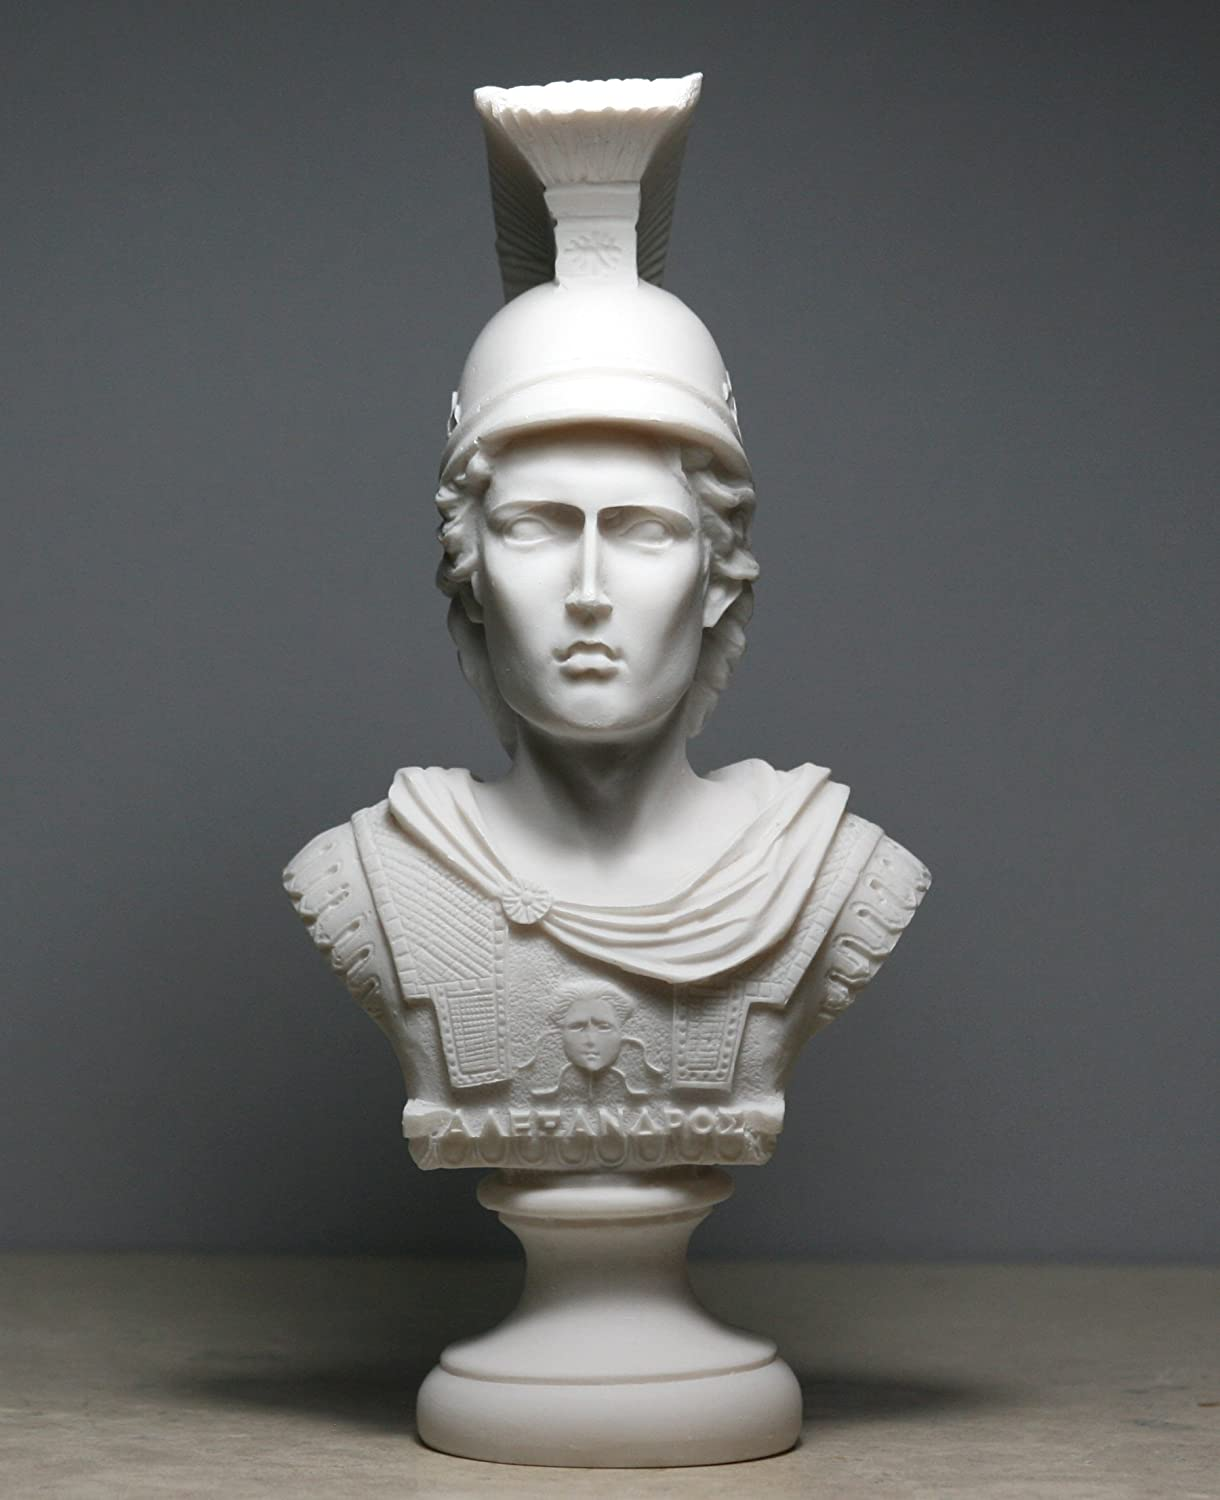 Alexander the Great bust Sculpture Alabaster Statue 7.48΄΄